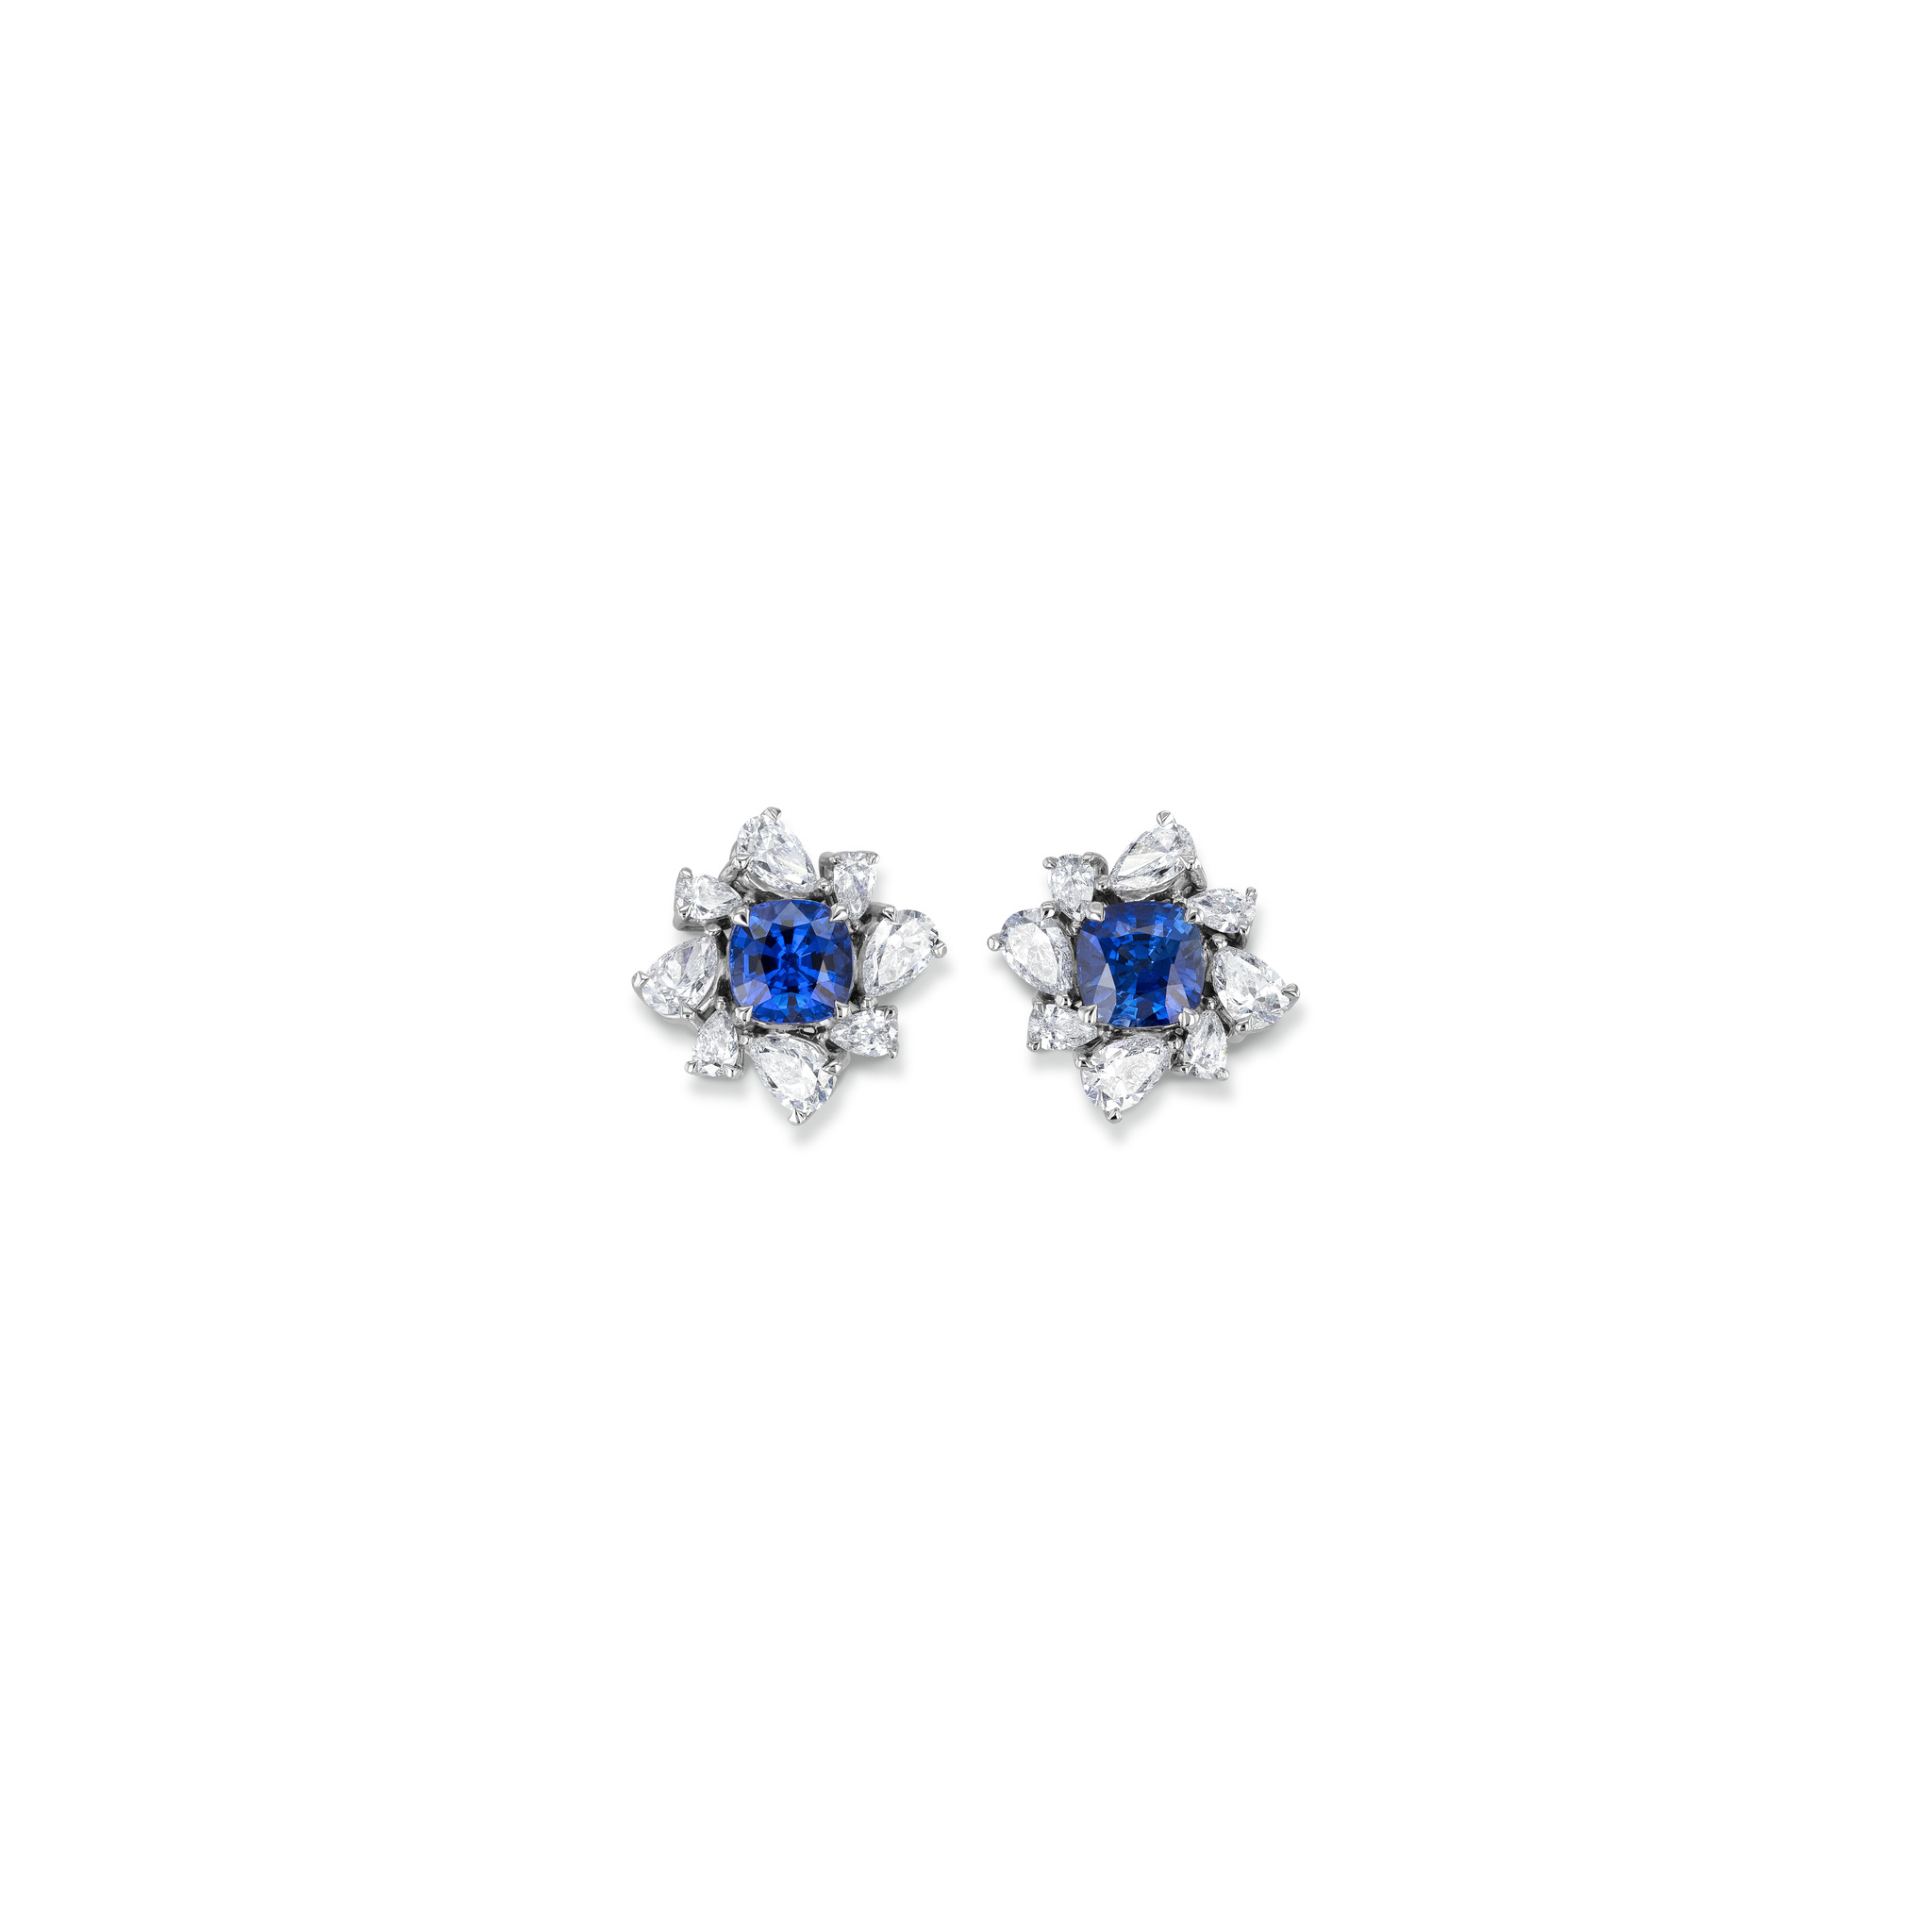 Earrings with sapphires